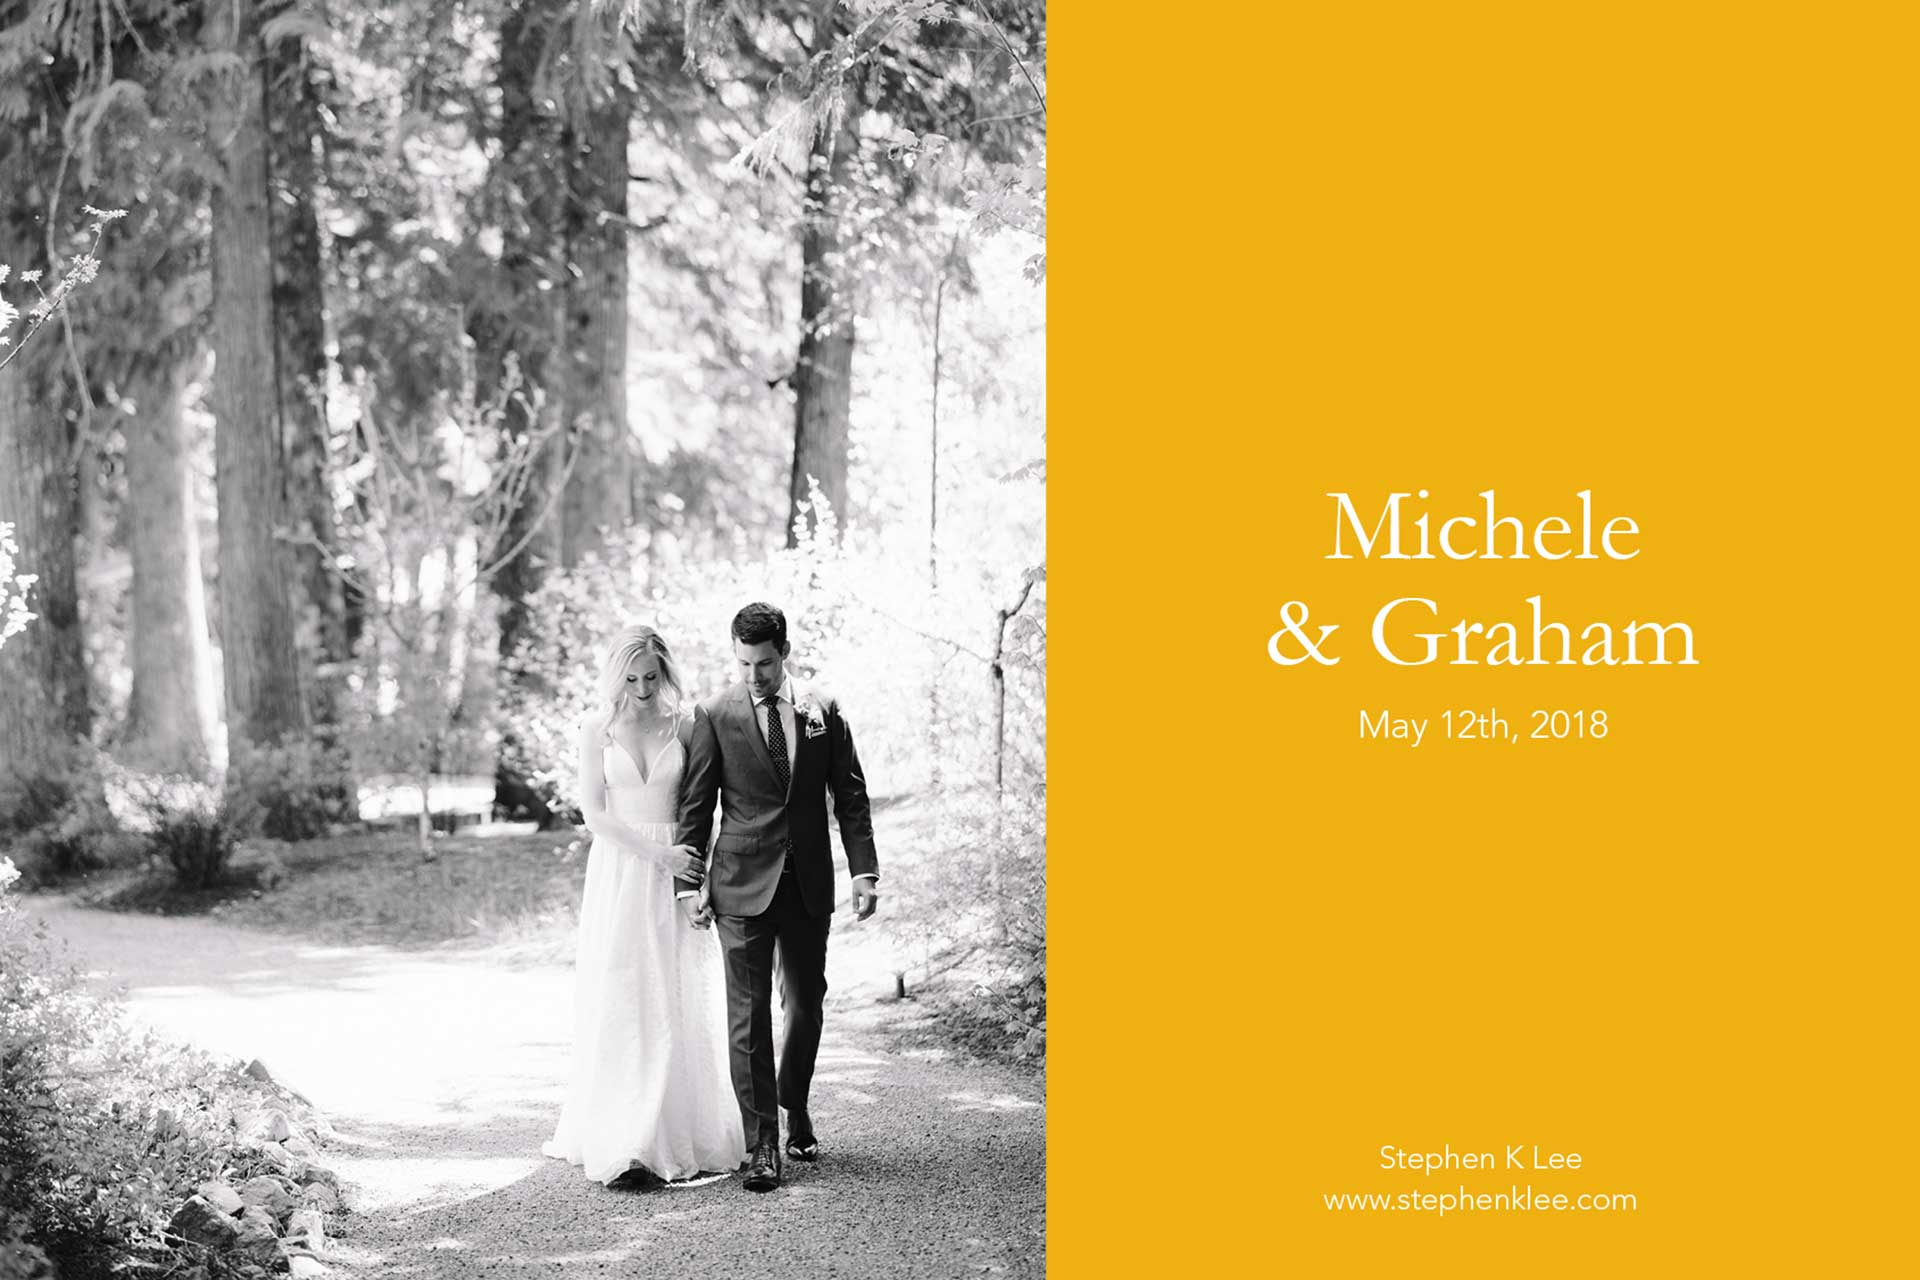 Michele and Graham's Wedding